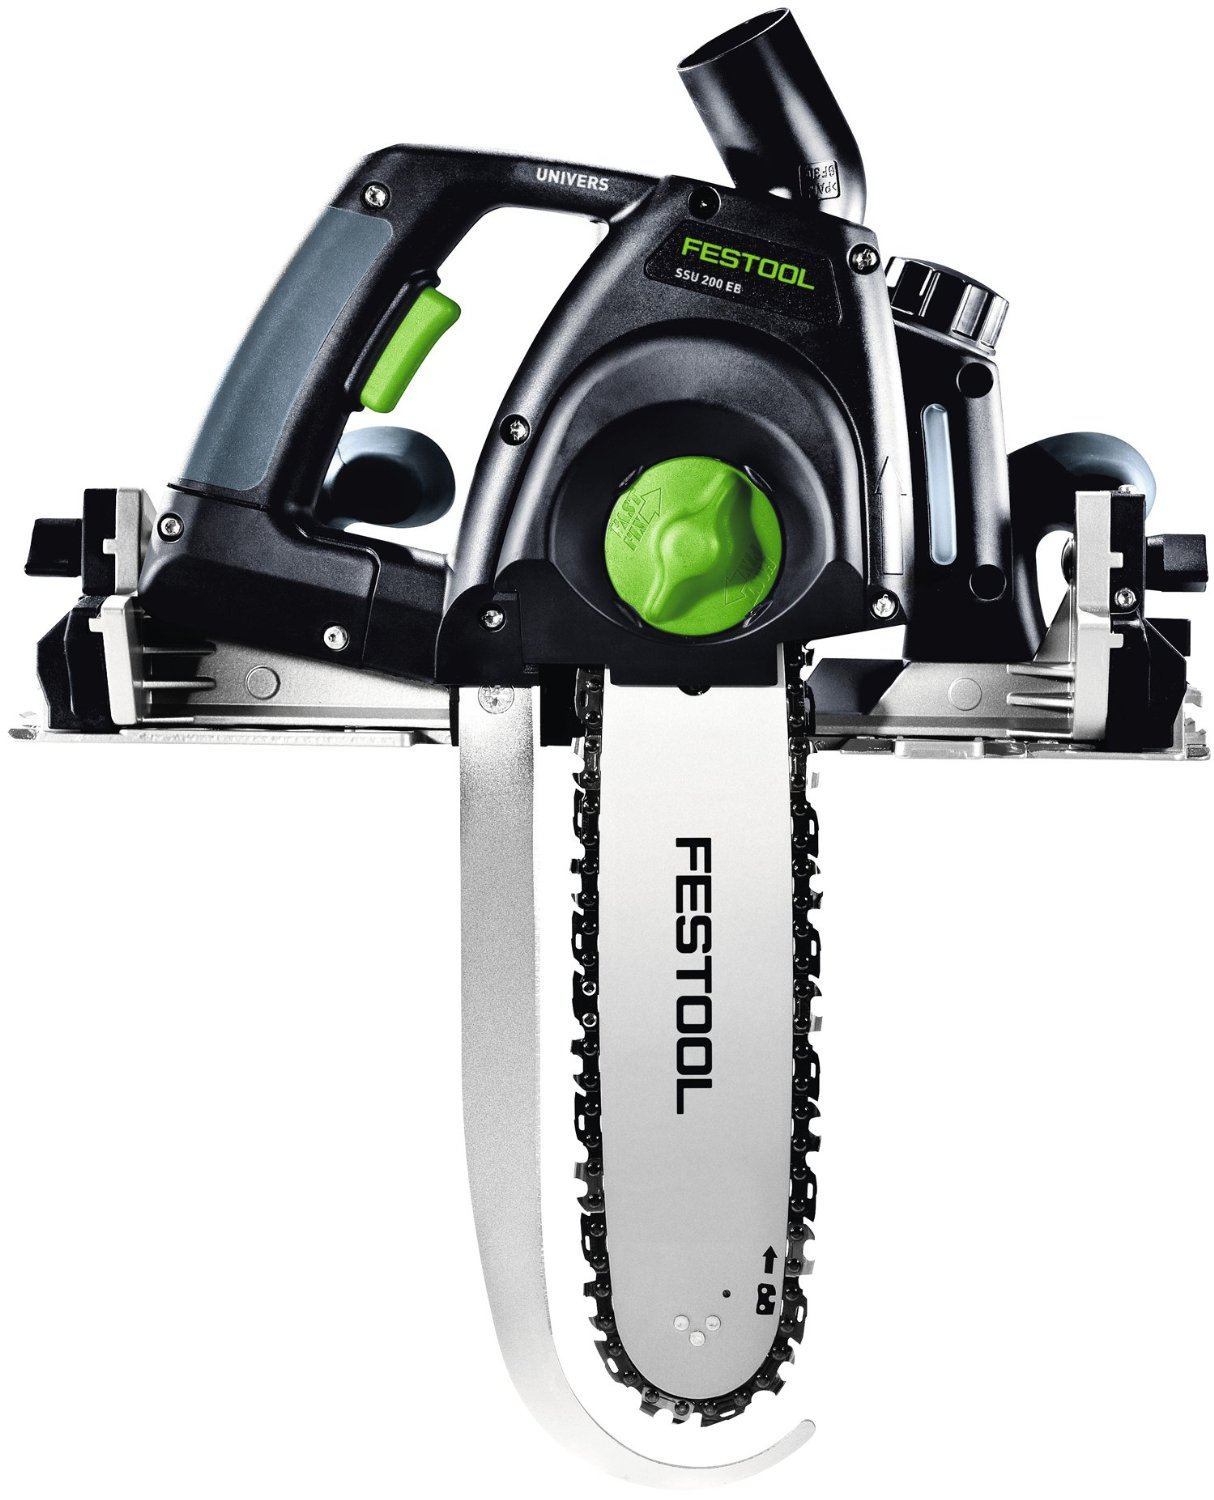 Beam Cutting Tools Festool Sword Saw Prazi Beam Cutter